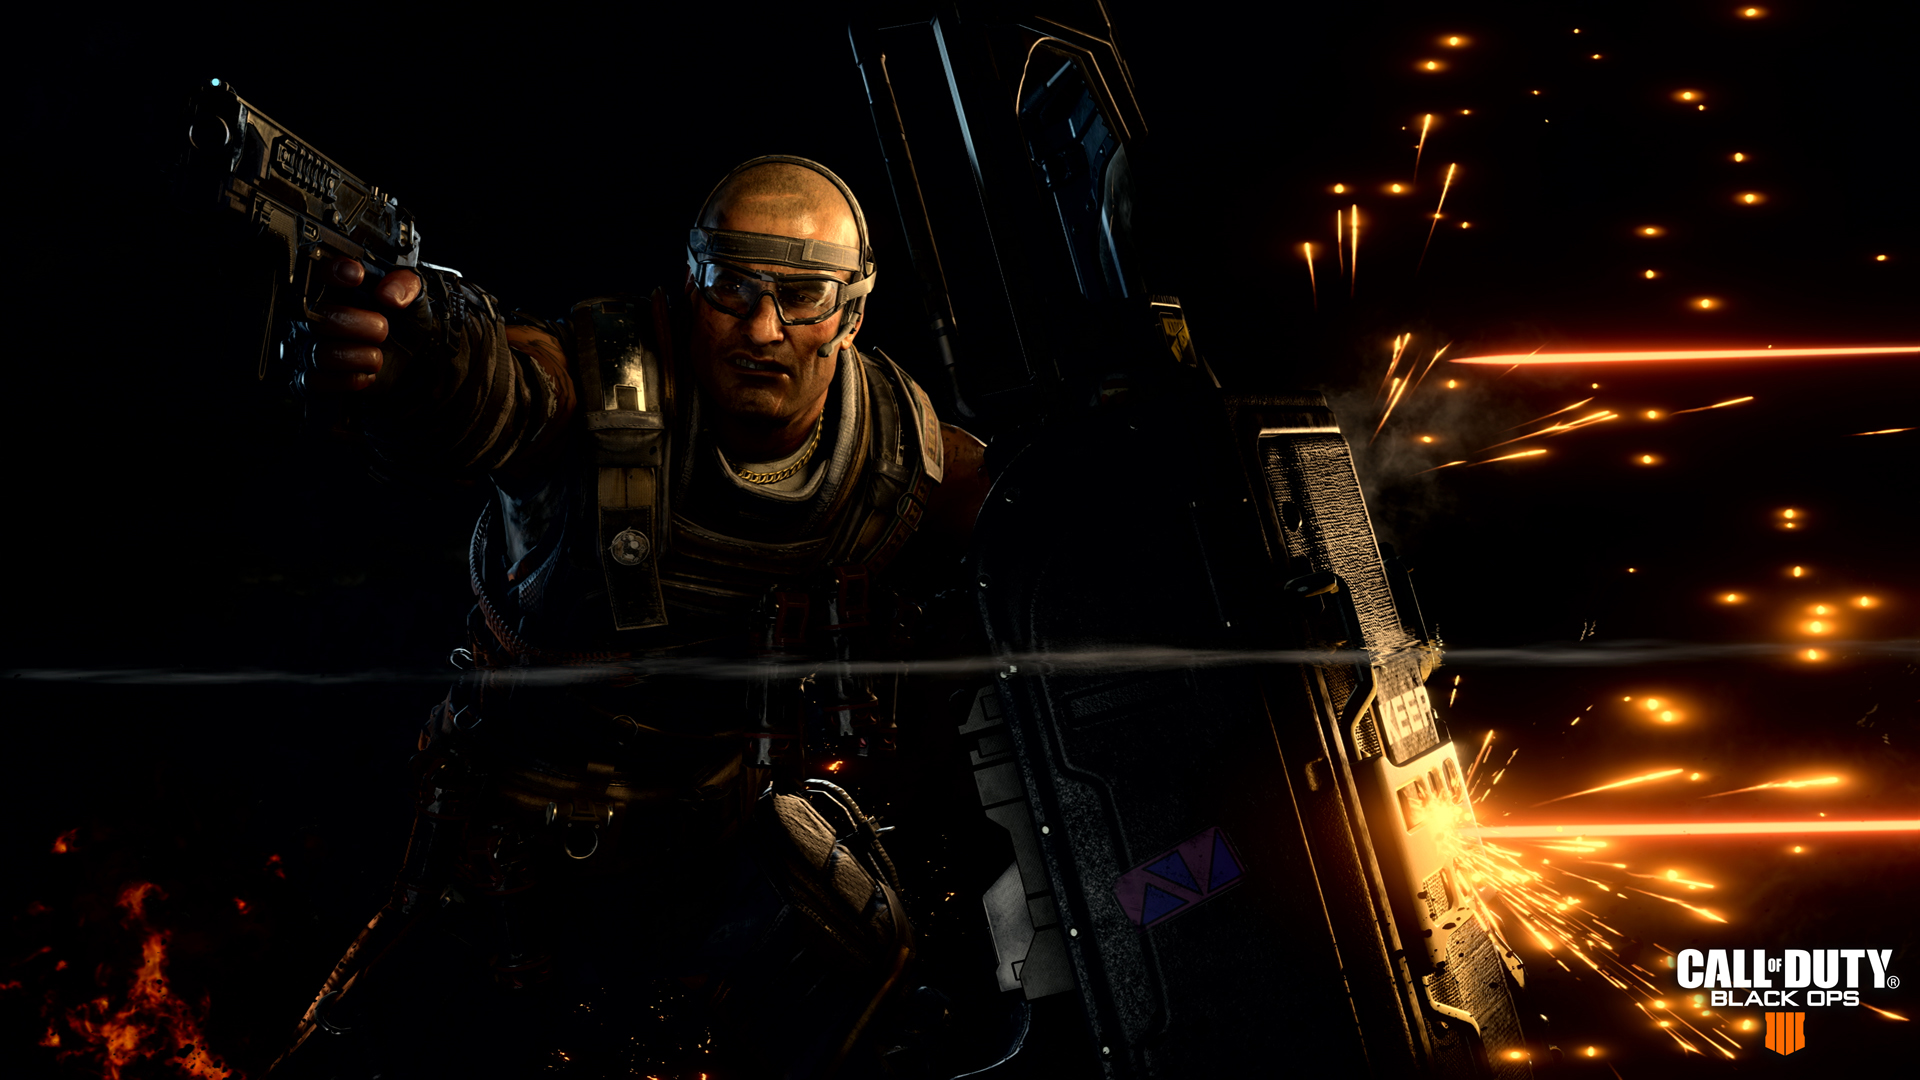 Call of Duty Black Ops 4 Screenshot #4. Bild: Activision